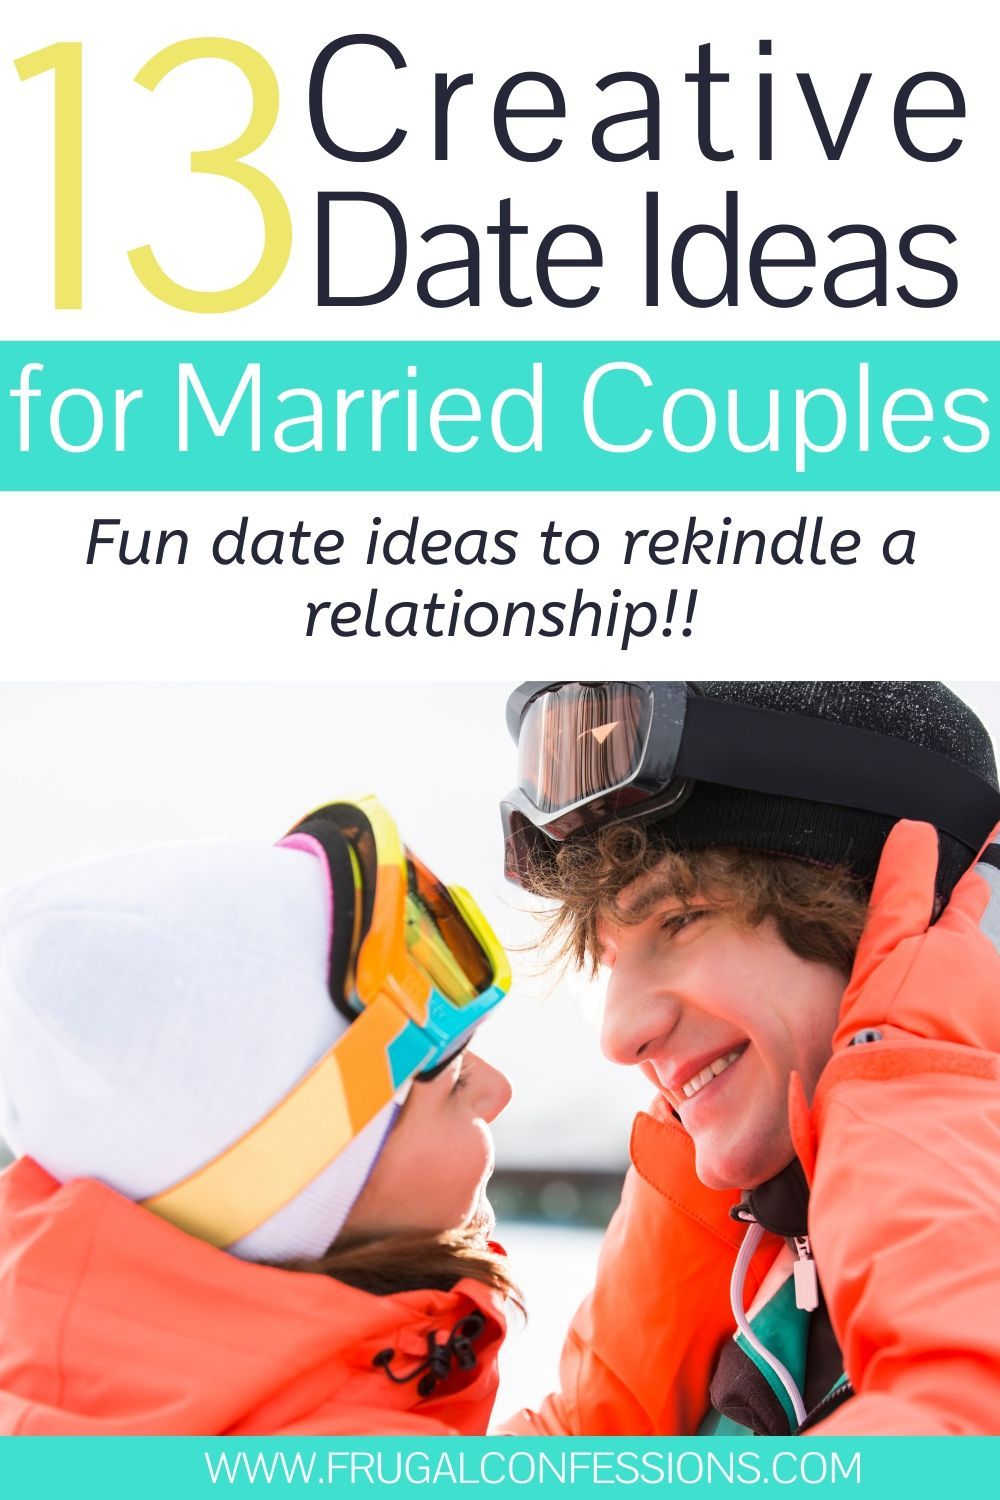 13 Creative Date Ideas for Married Couples (Add SPICE back, Tonight!)